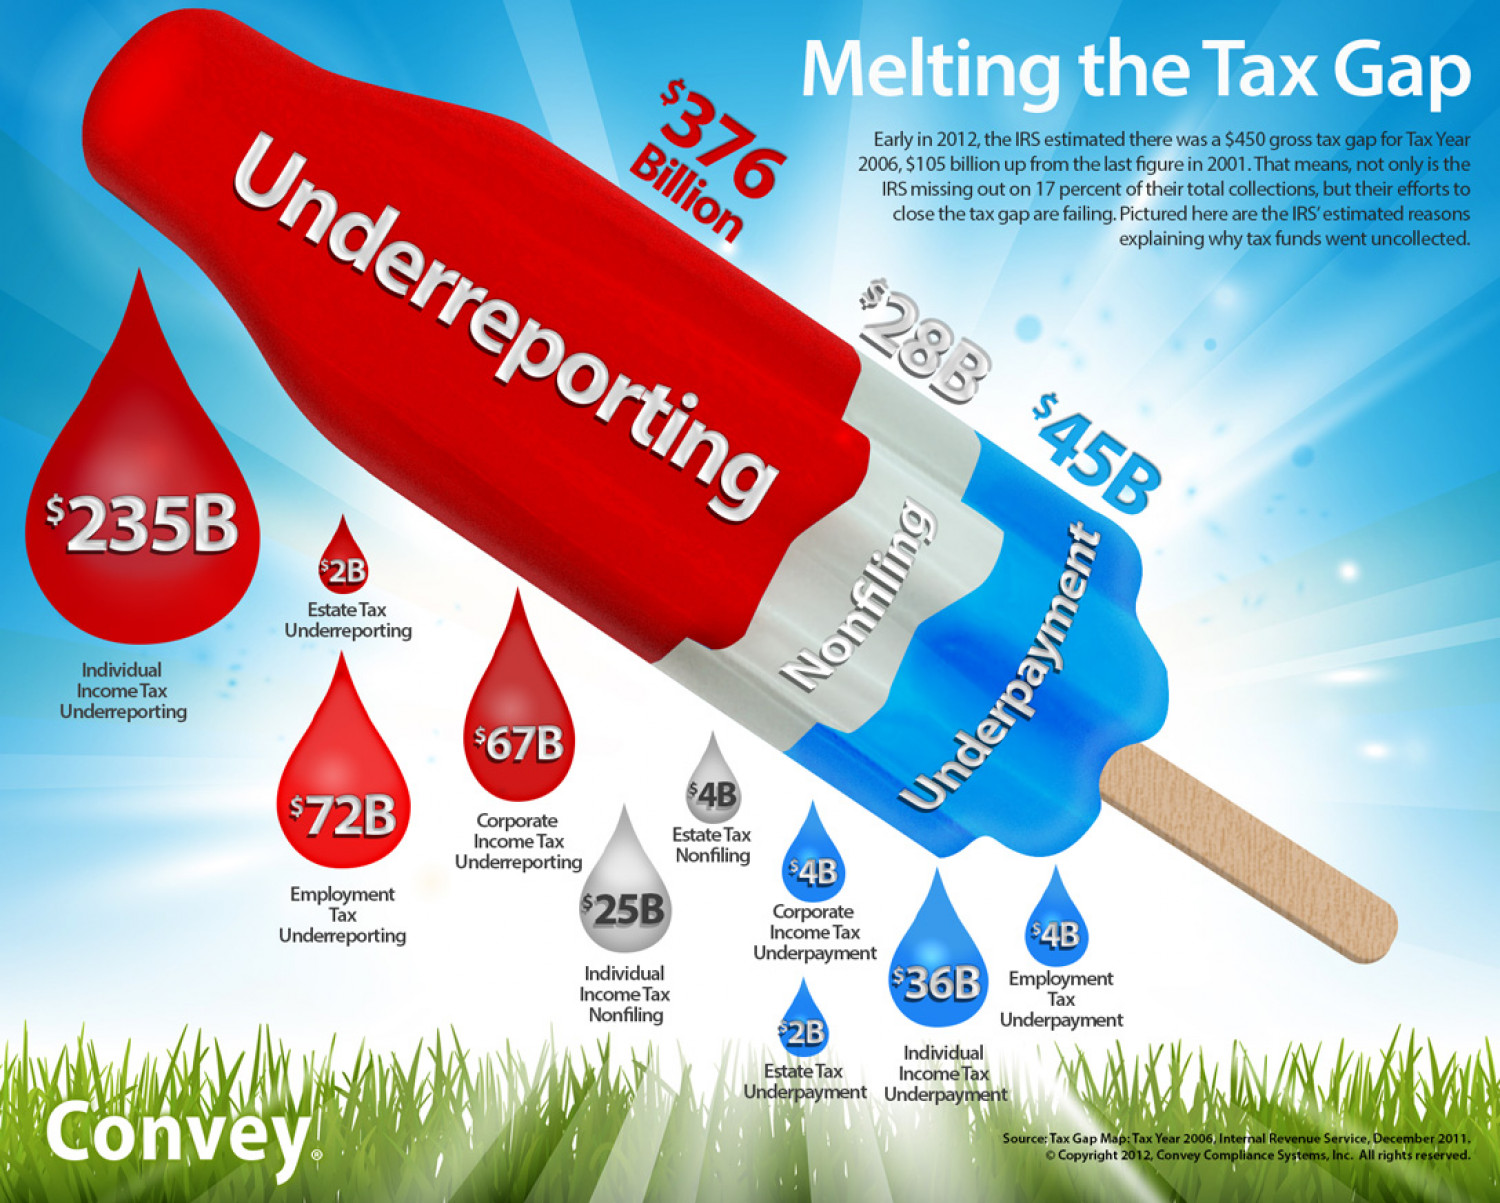 Melting the Tax Gap Infographic